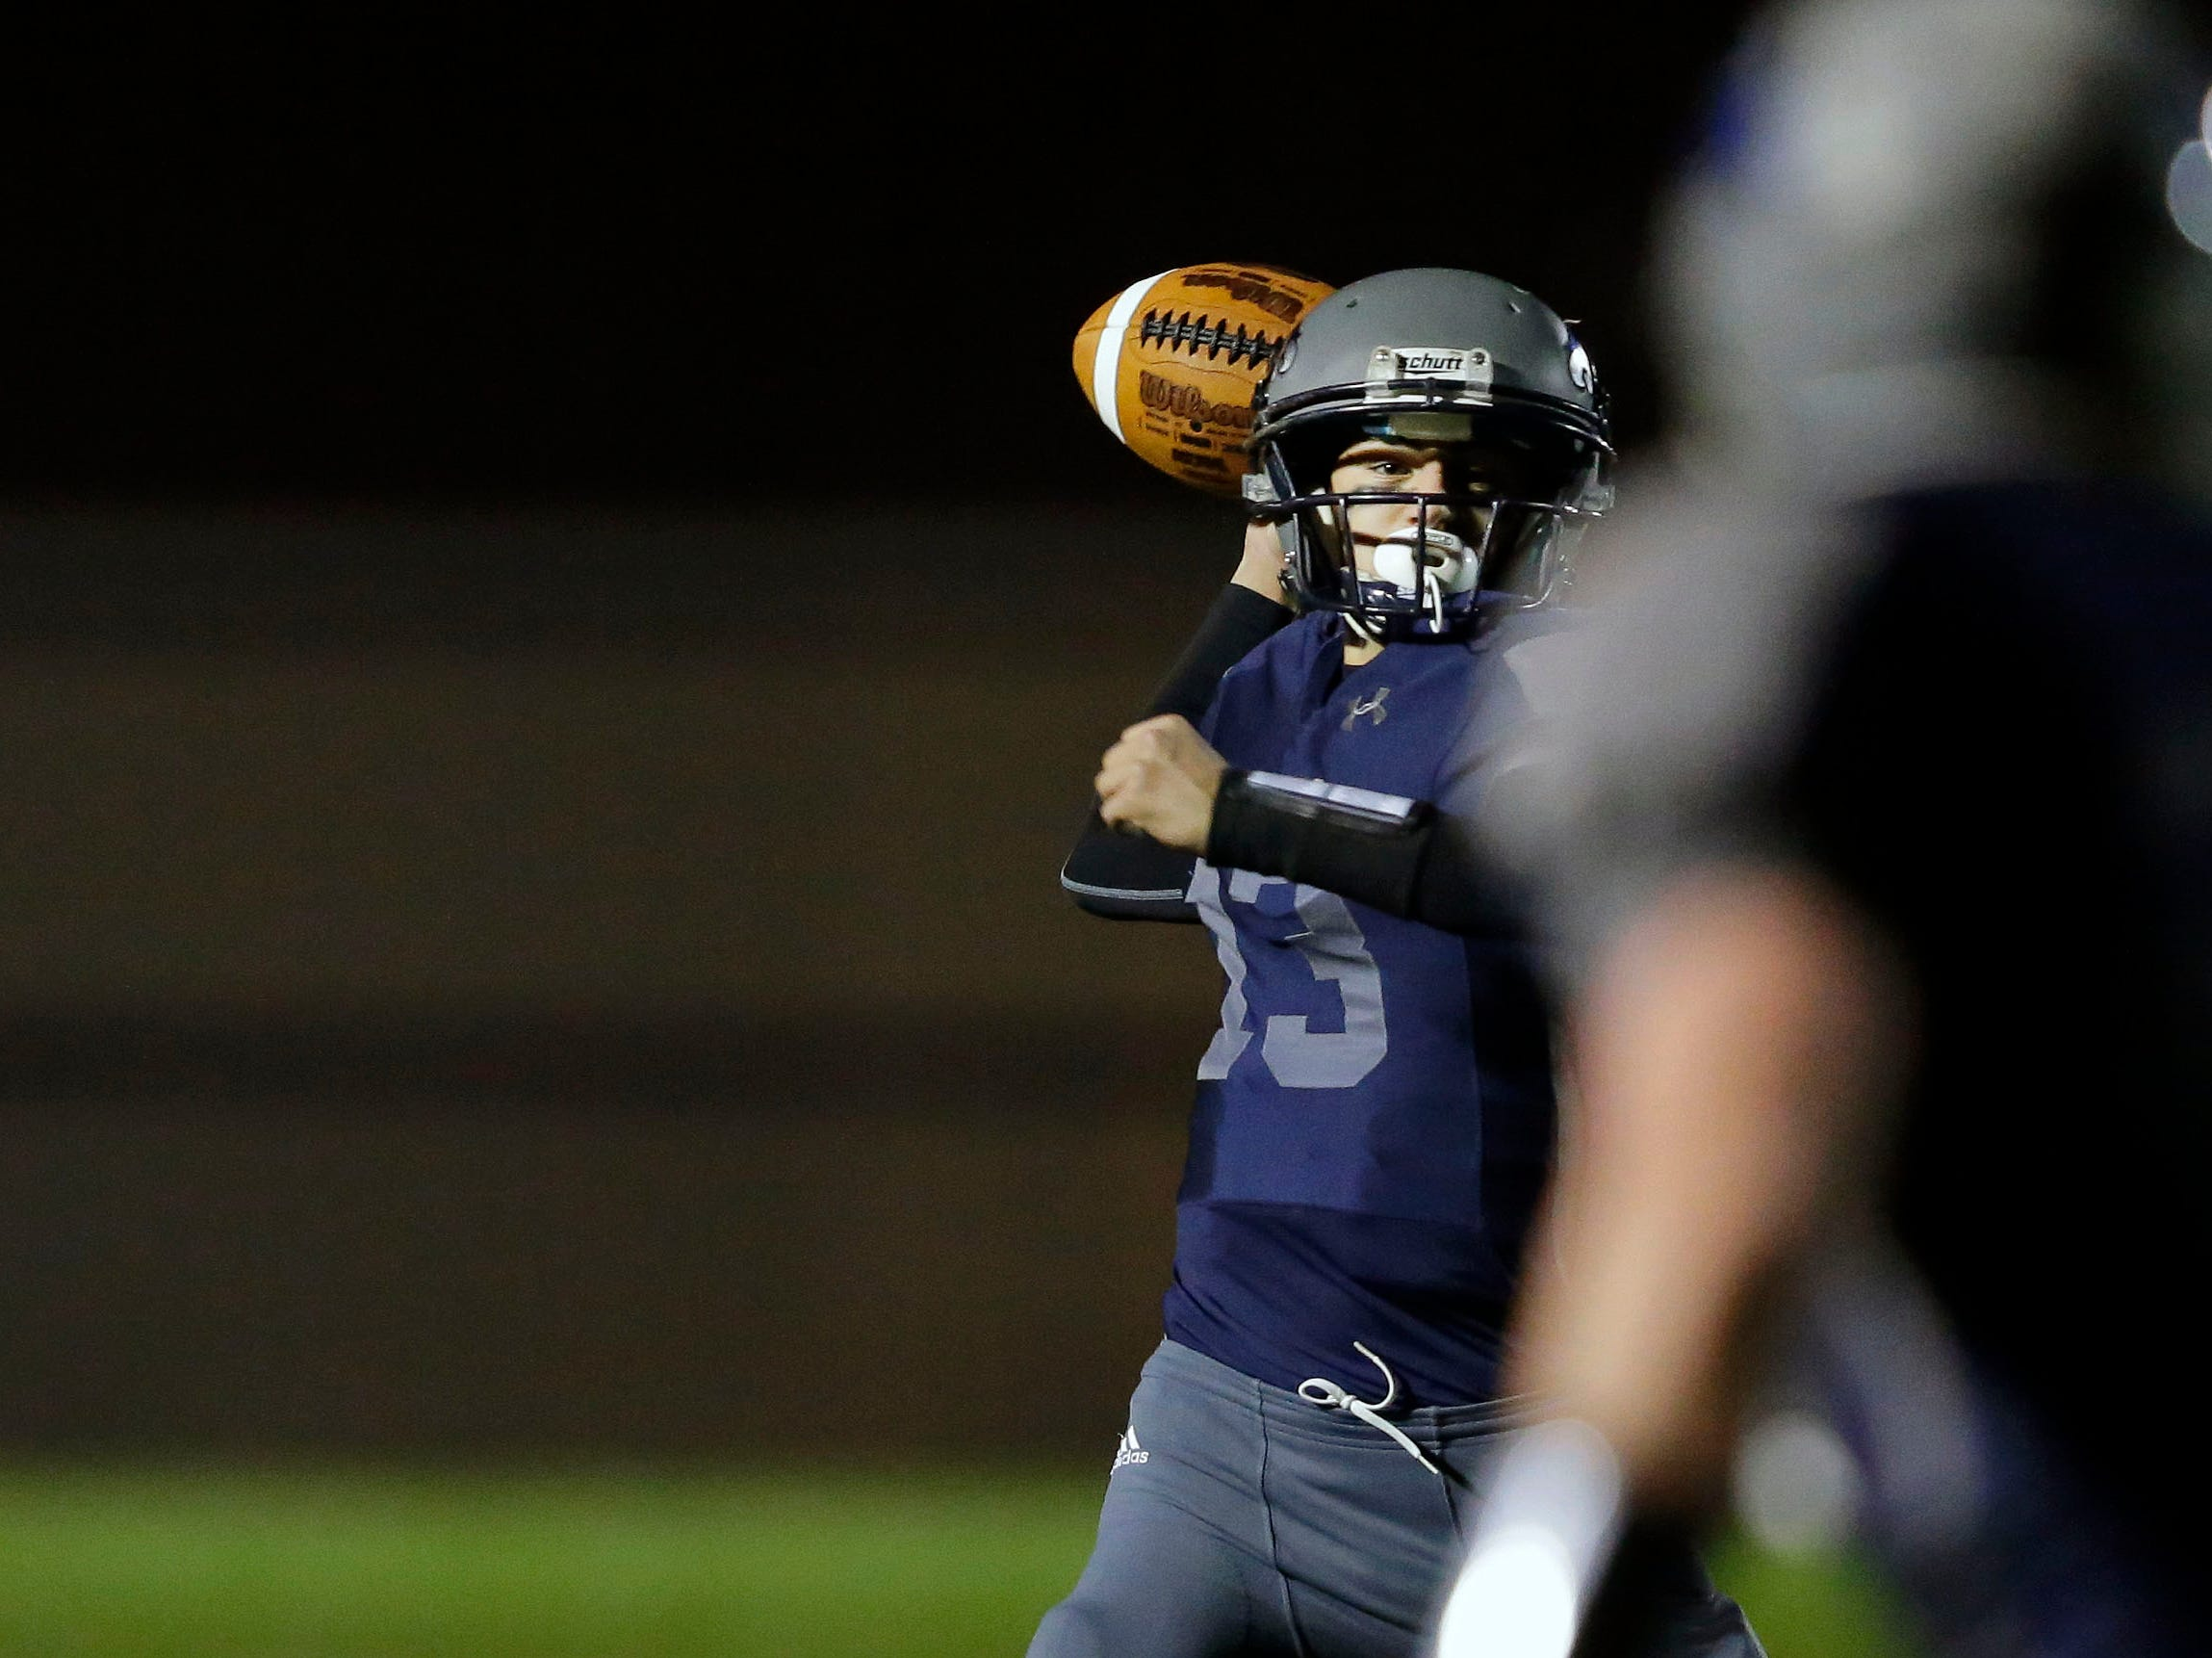 Ray Zuleger of Xavier looks for a receiver as the Hawks take on Waupaca in a Bay Conference football game Friday, October 12, 2018, at Rocky Bleier Field in Appleton, Wis.